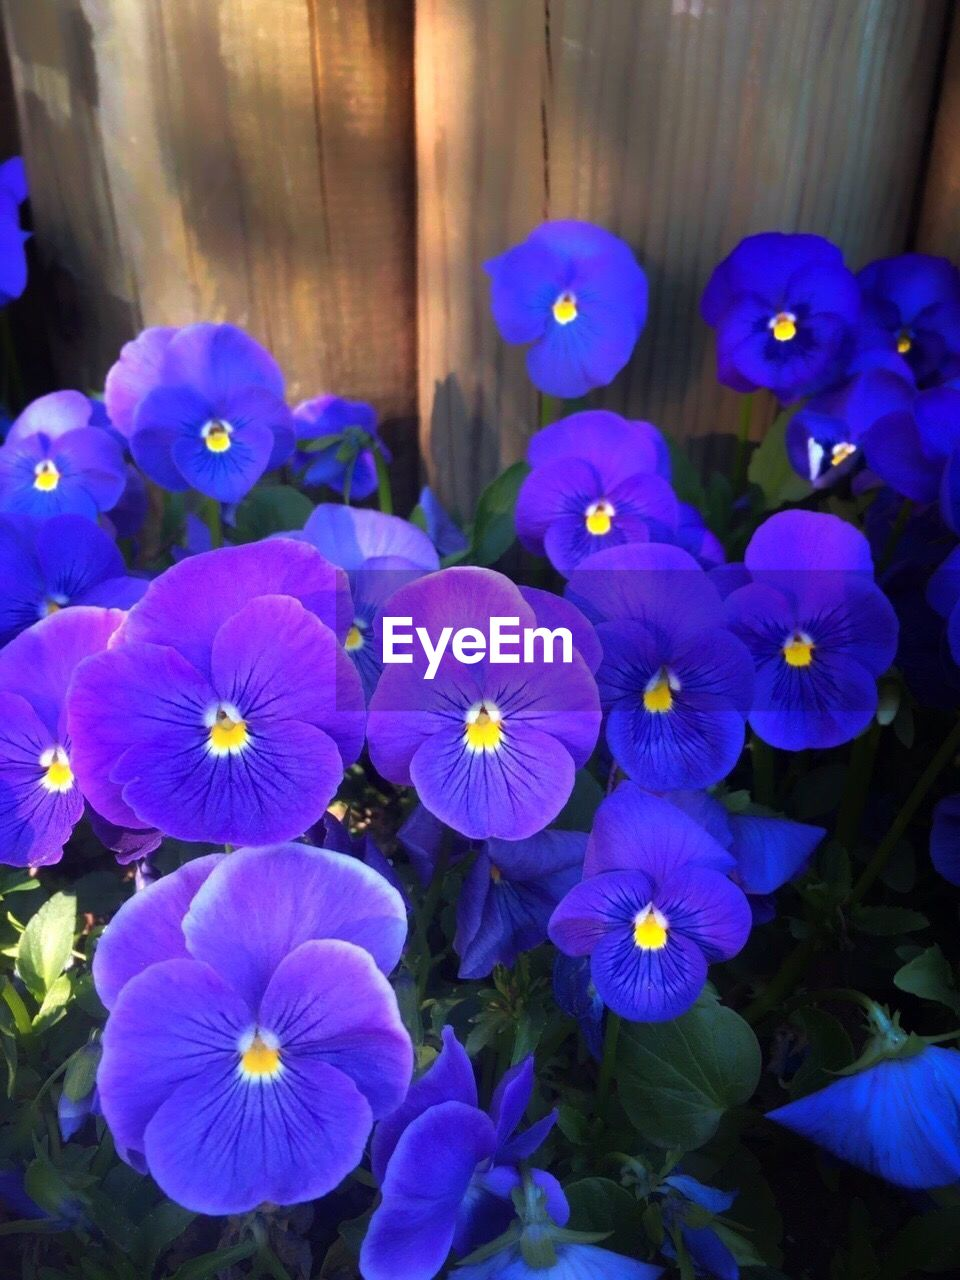 flower, petal, beauty in nature, purple, no people, flower head, growth, nature, freshness, fragility, day, blooming, outdoors, close-up, petunia